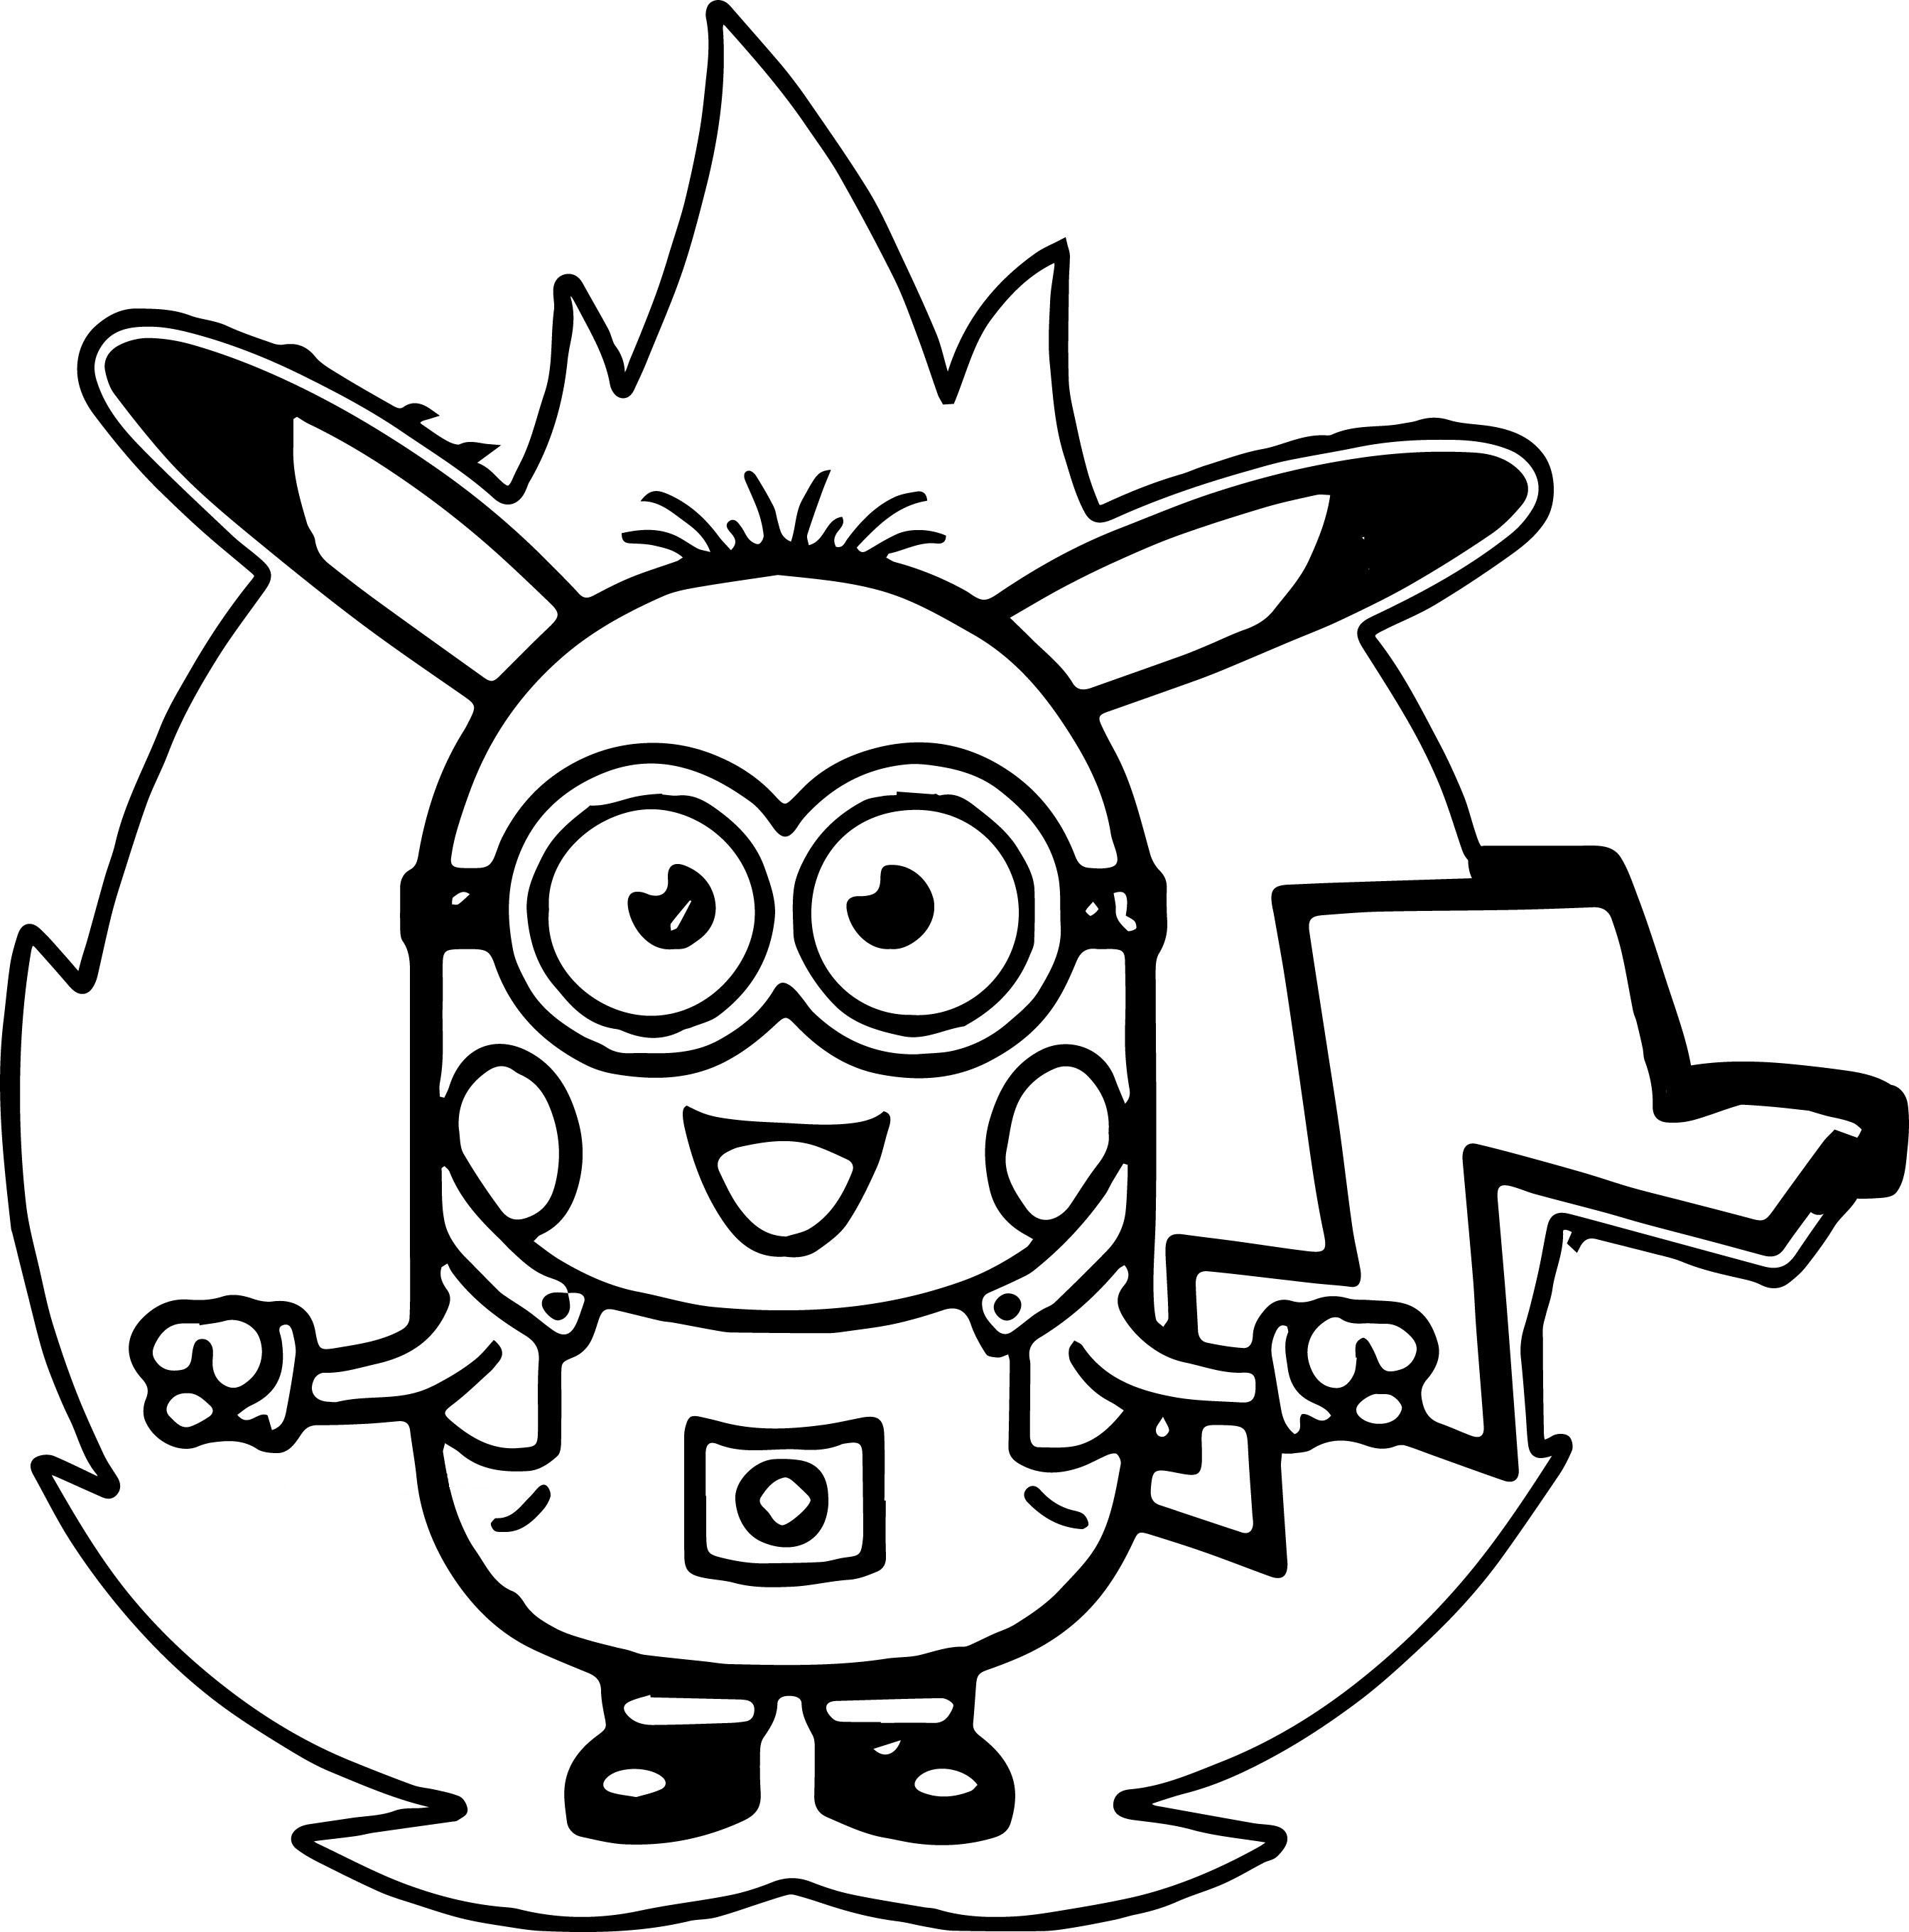 Pin By Pskpedia Com On Pokemon Coloring Pages Pokemon Coloring Pages Minions Coloring Pages Minion Coloring Pages